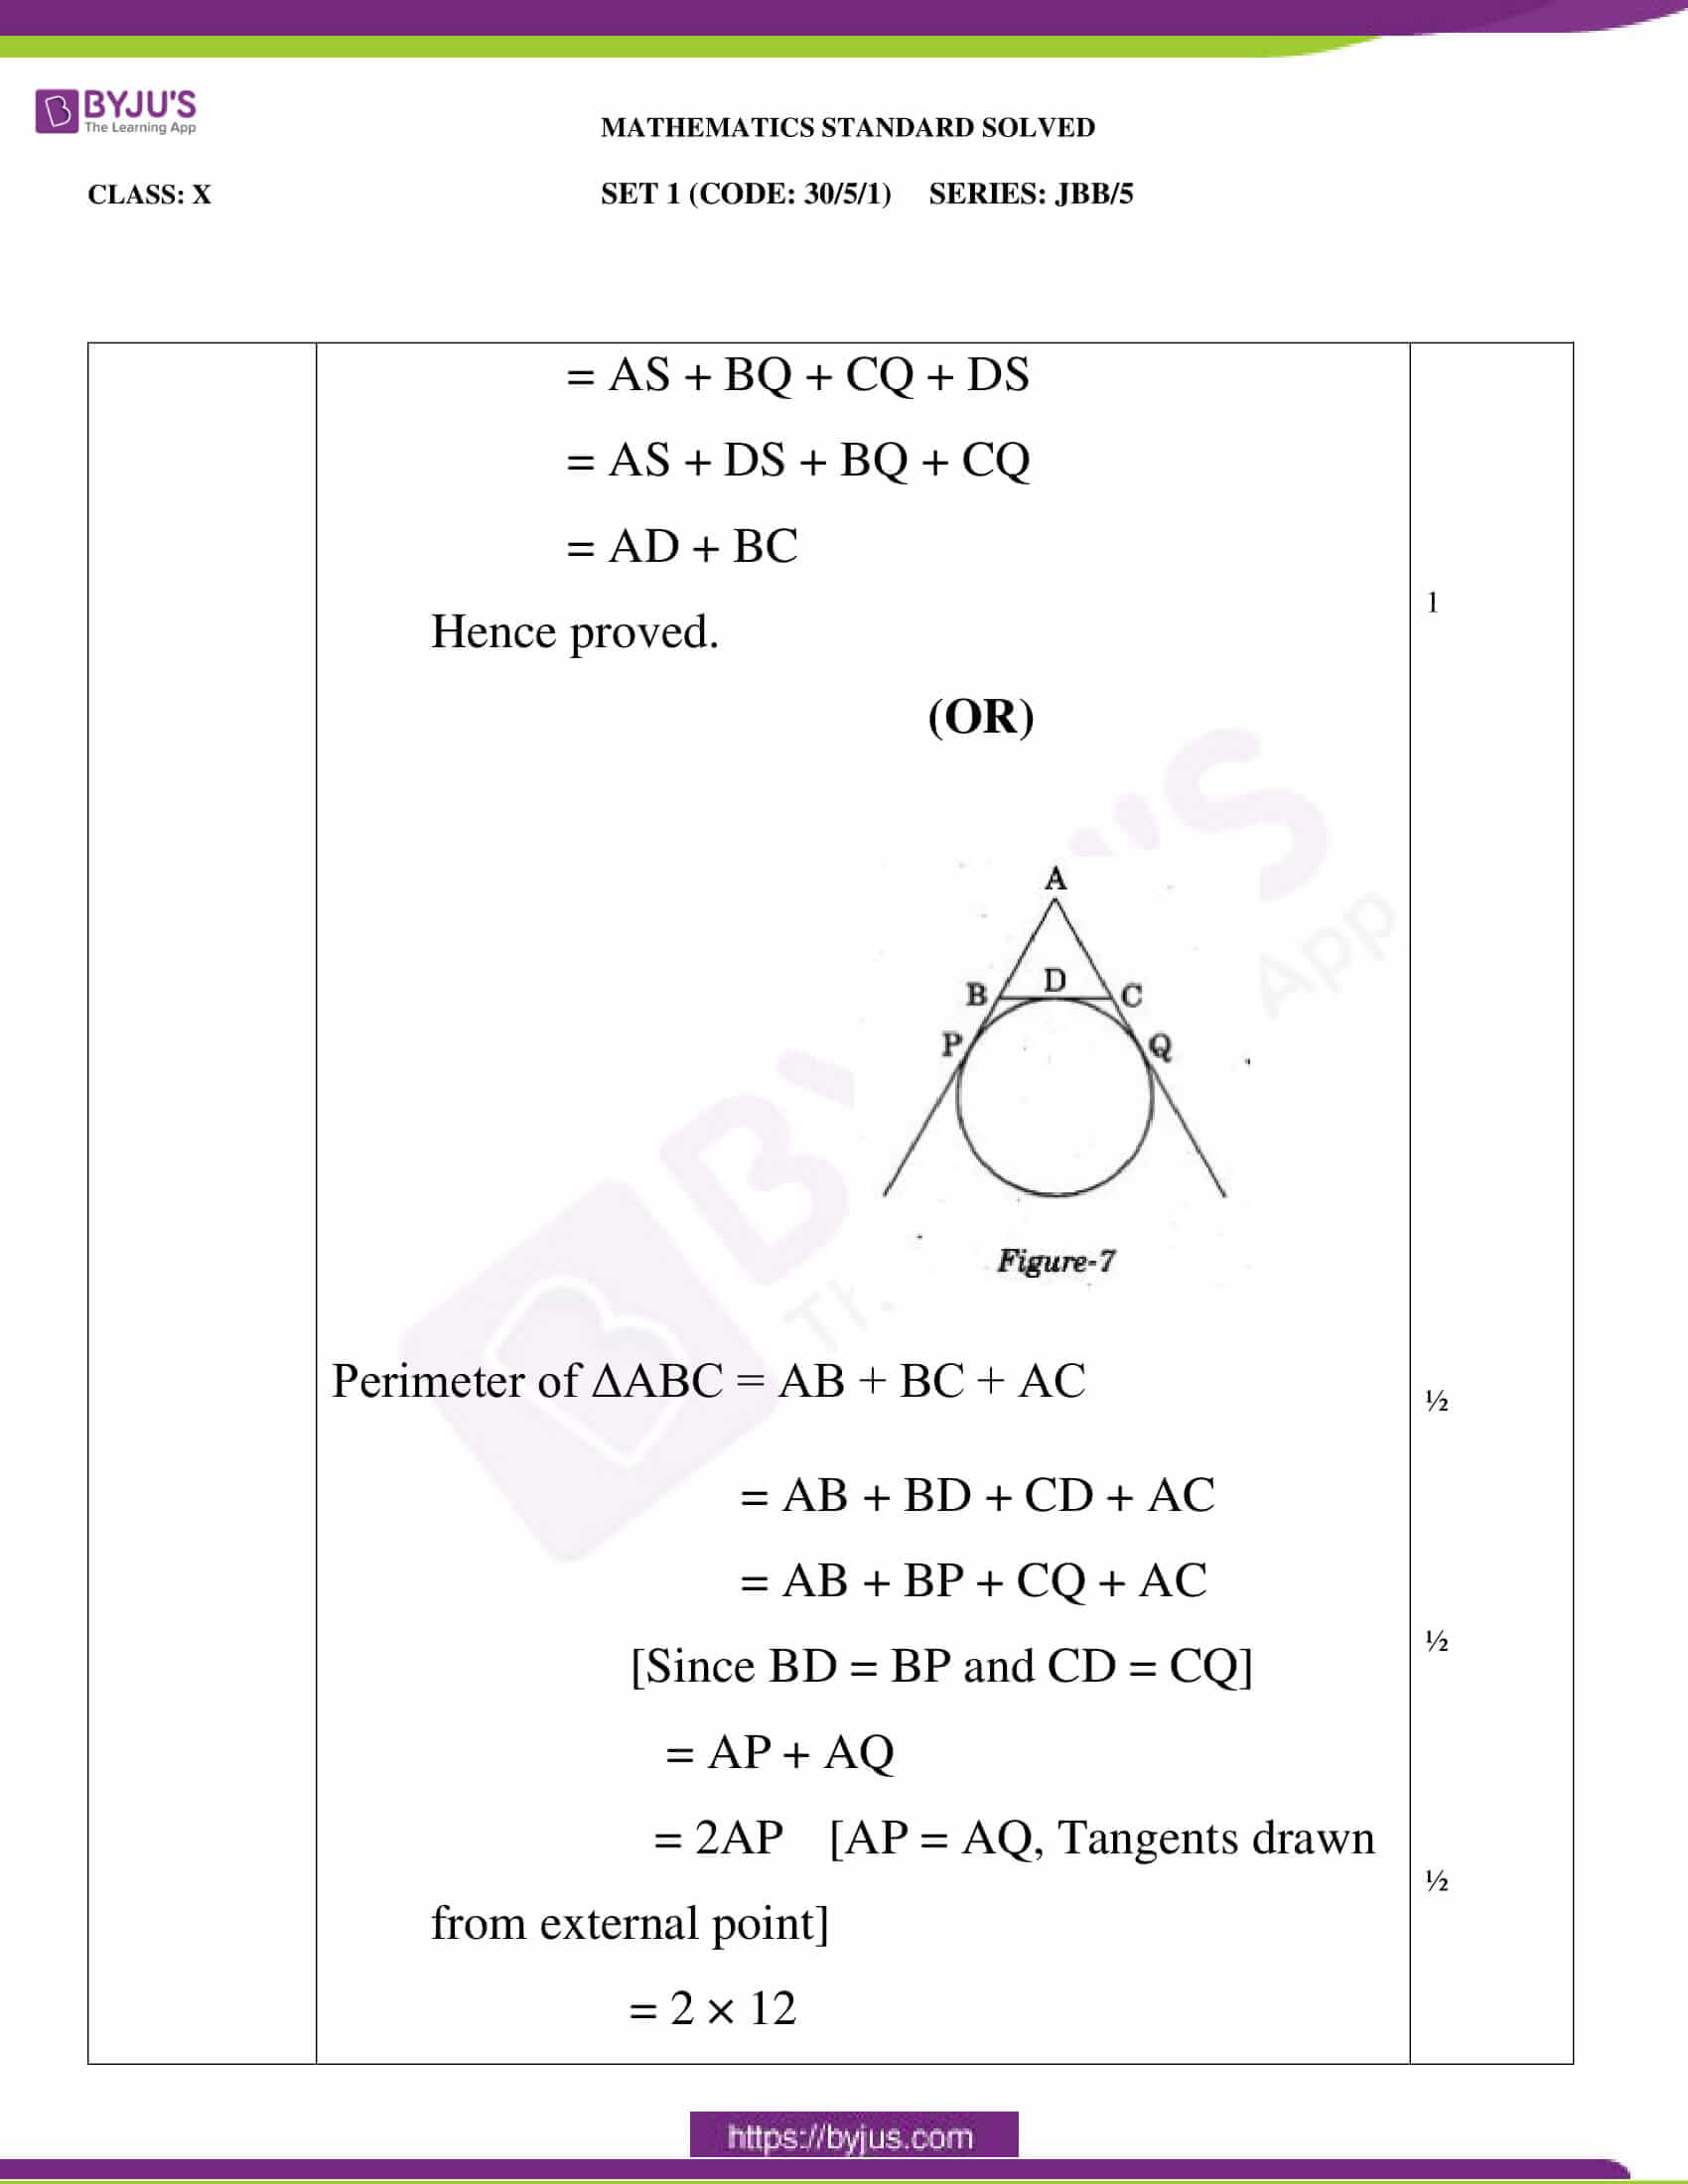 cbse class 10 maths standard question paper solution 2020 set 1 06